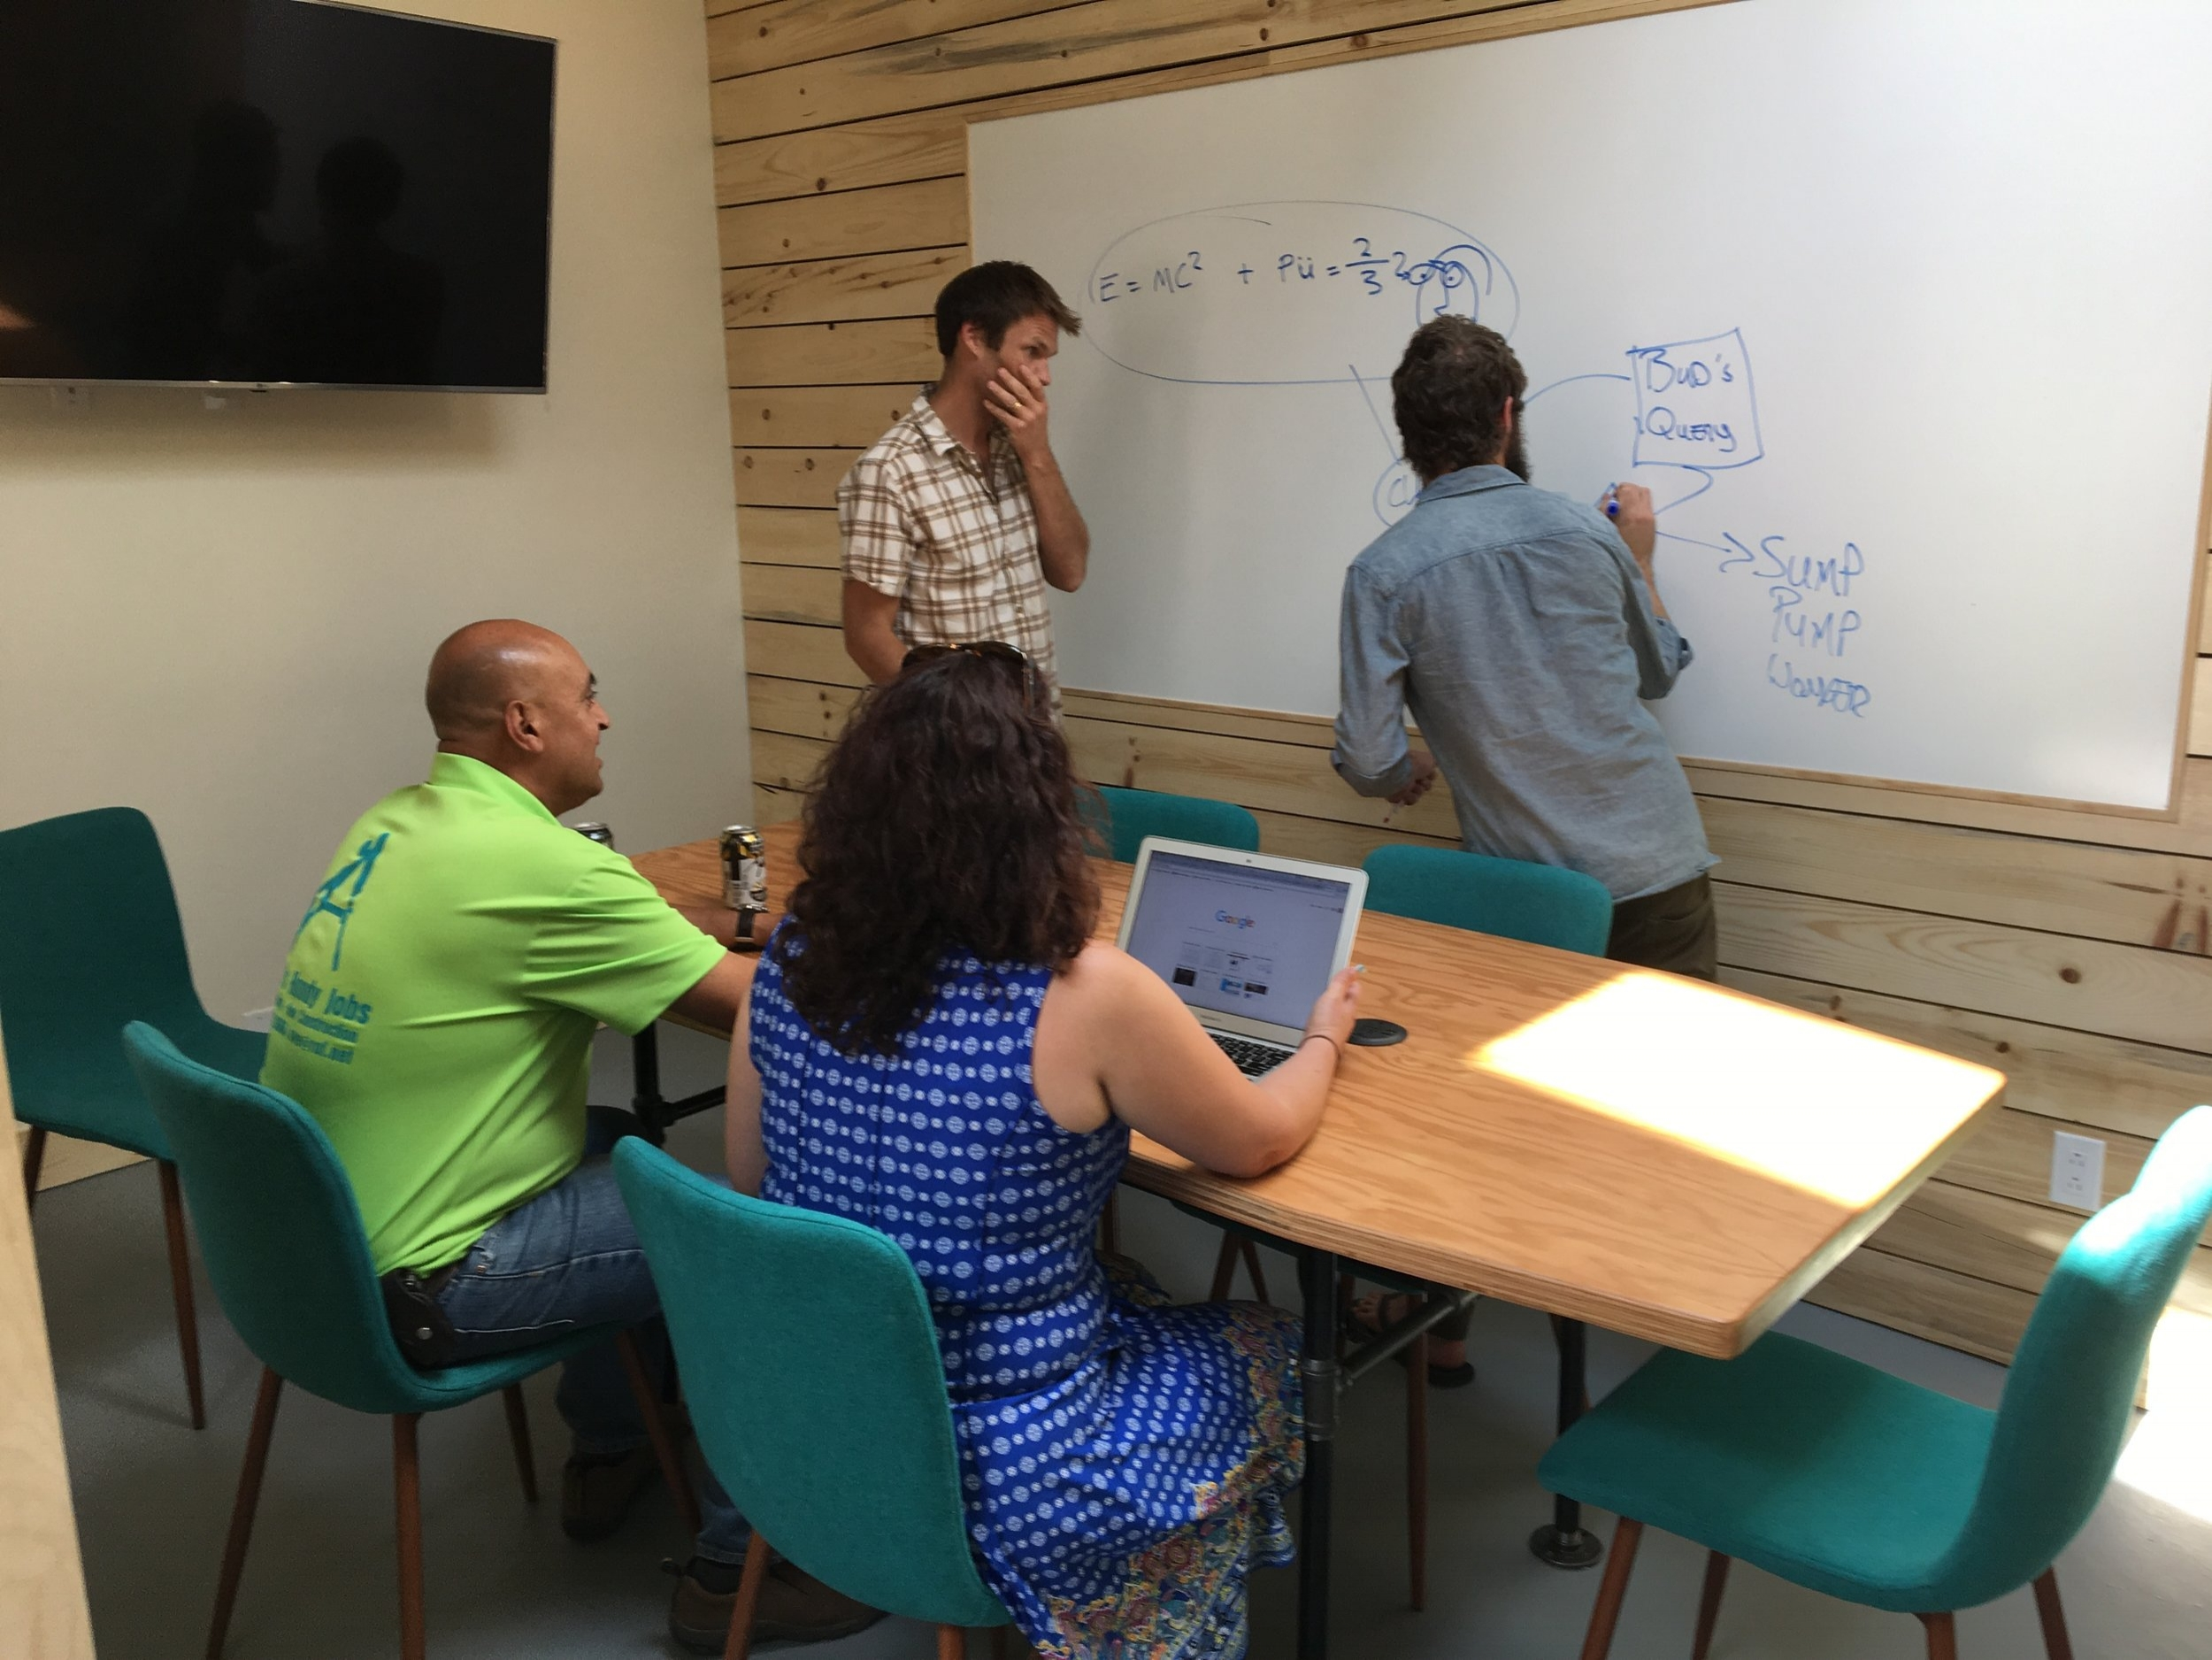 The Run - 8-10 guests seated around the table or15 guests presentation style without the table.Additionally there is:Ample natural light through a sunlight, which can also be shaded if desired.A 55in screen allows for video conference or presentations.The table has electrical outlets so powering laptops is never an issue.A large whiteboard$10-15/hr Monthly members (depending on membership) $18/hr non-members and day pass members